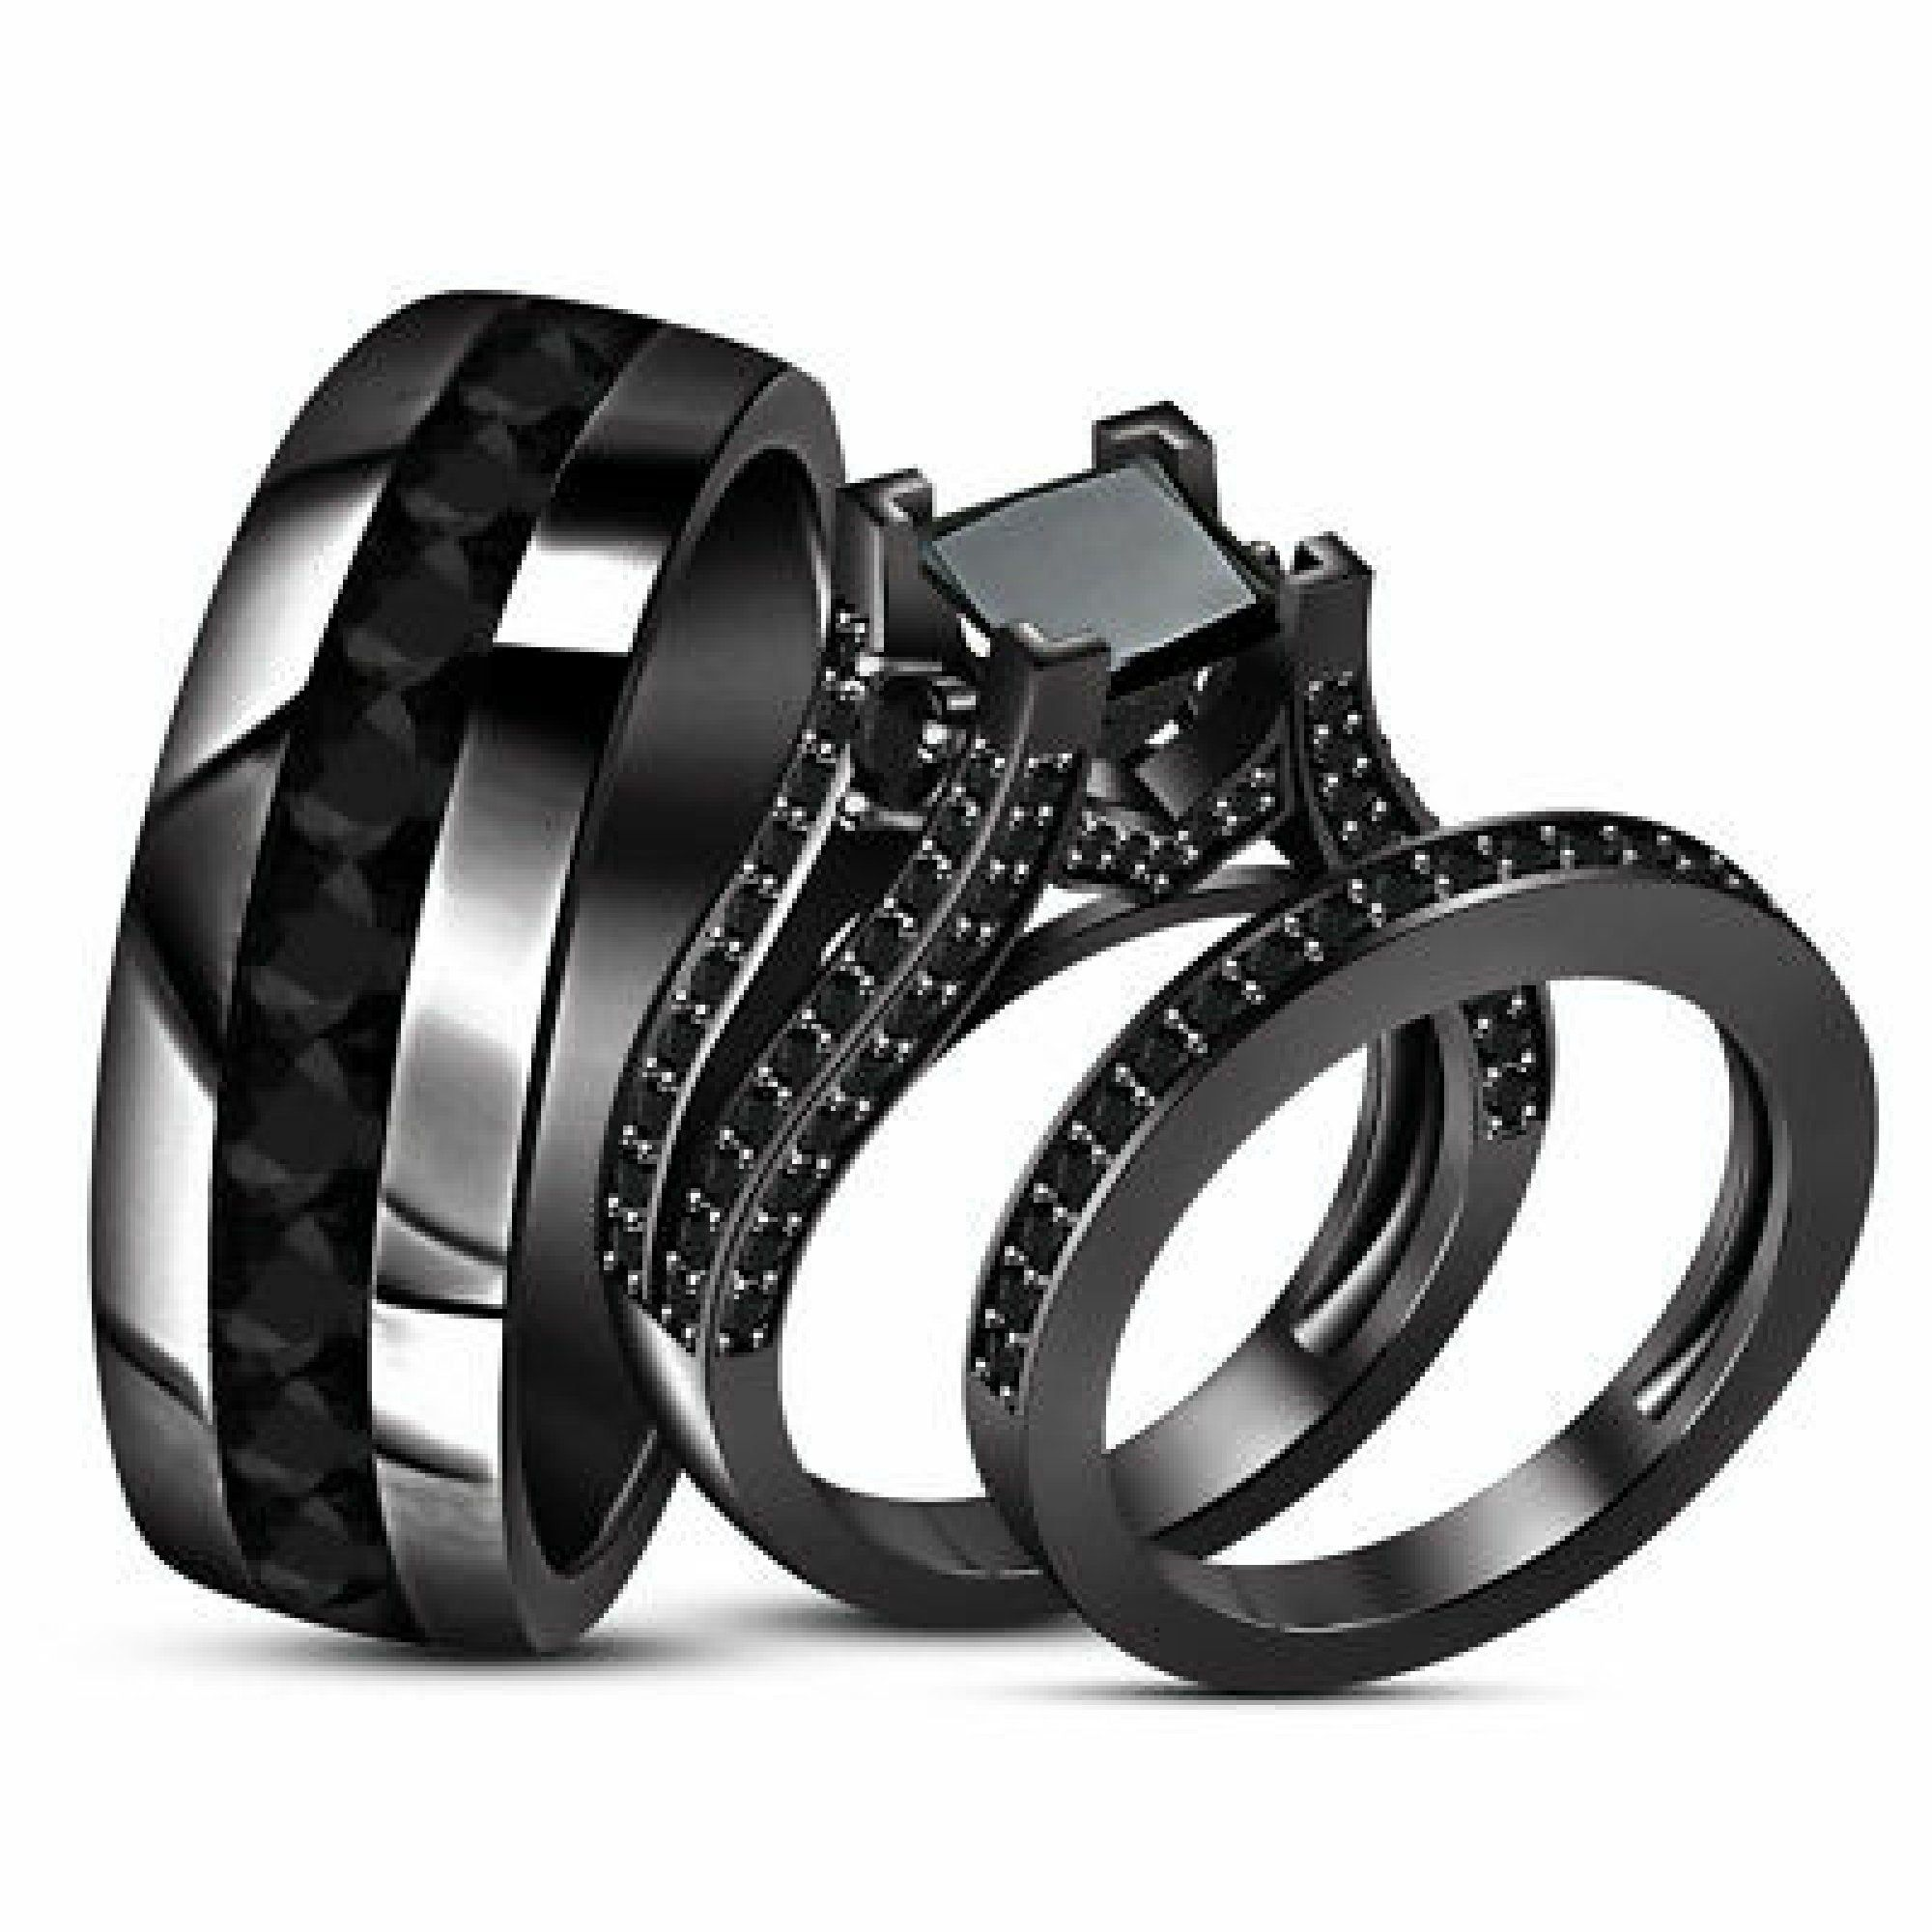 Black Gold Over Princess Diamond Wedding Bridal Trio Ring Set Etsy In 2020 Black Gold Ring Black Gold Jewelry Black Wedding Rings